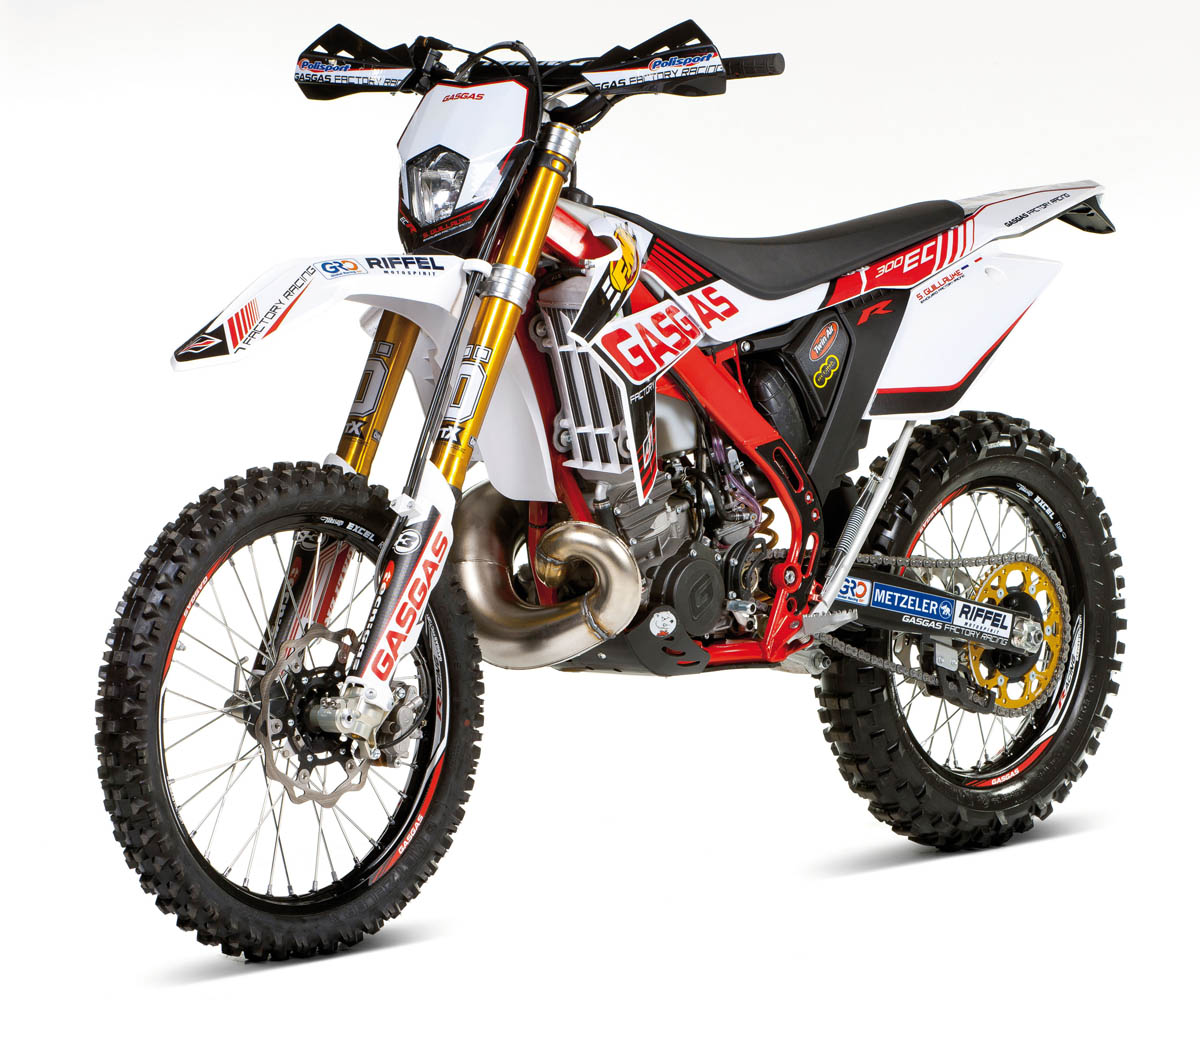 2013 gas gas 250 cc super moto and sexy girls. Black Bedroom Furniture Sets. Home Design Ideas